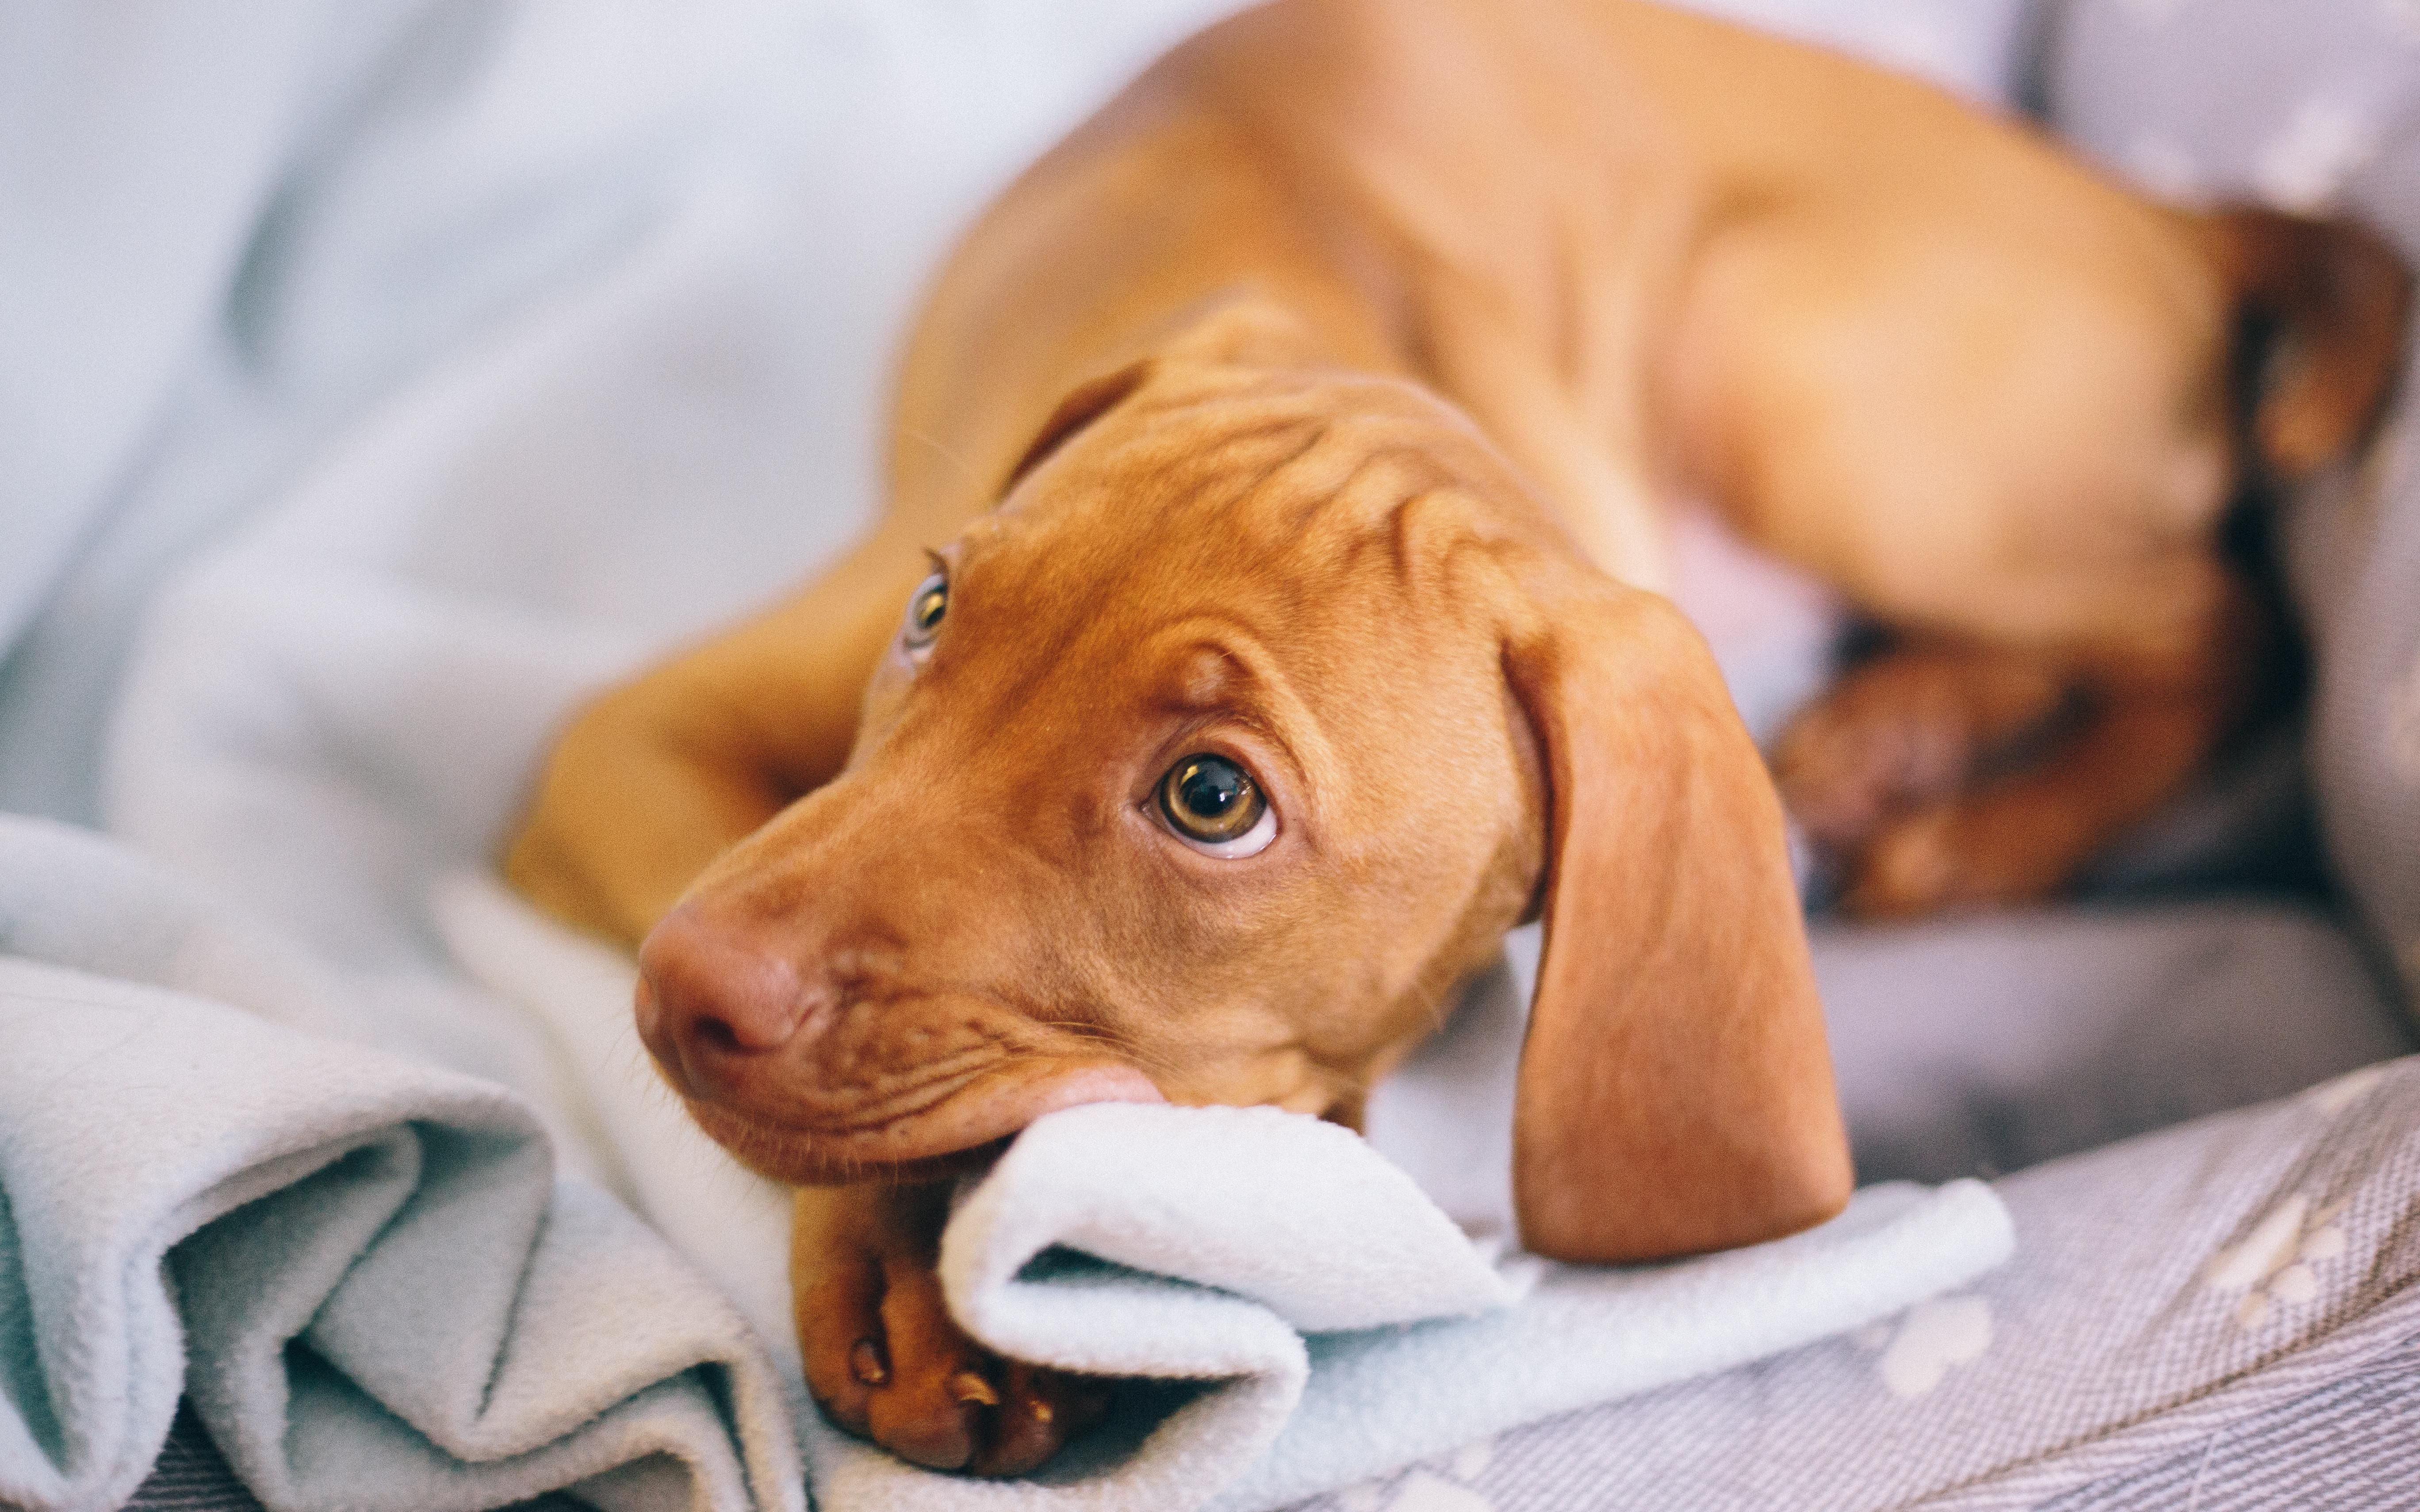 Those Puppy Dog Eyes Dogpictures Dogs Aww Cuteanimals